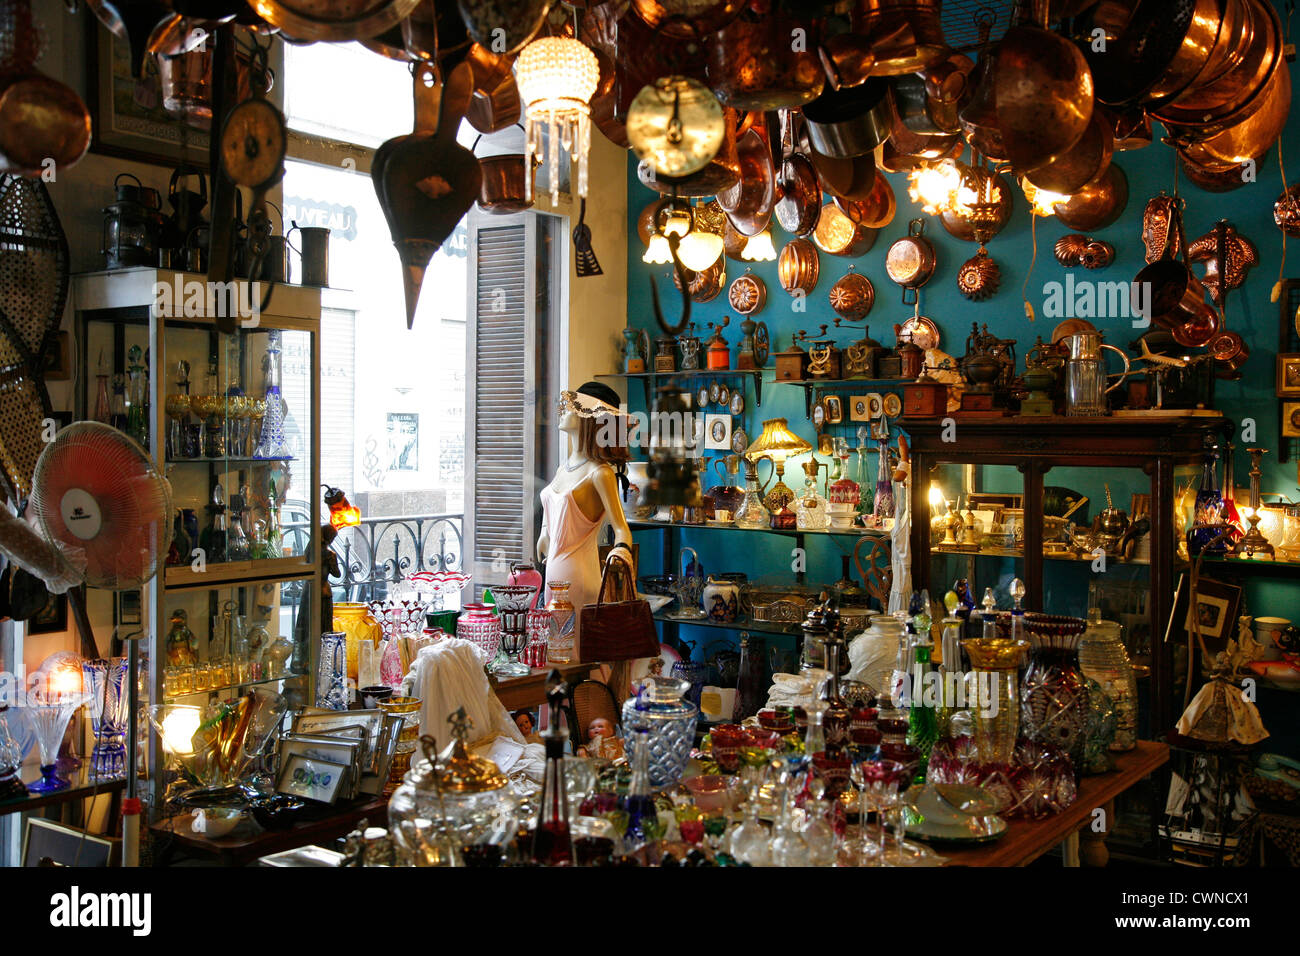 Antiques store in San Telmo, Buenos Aires, Argentina. - Stock Image